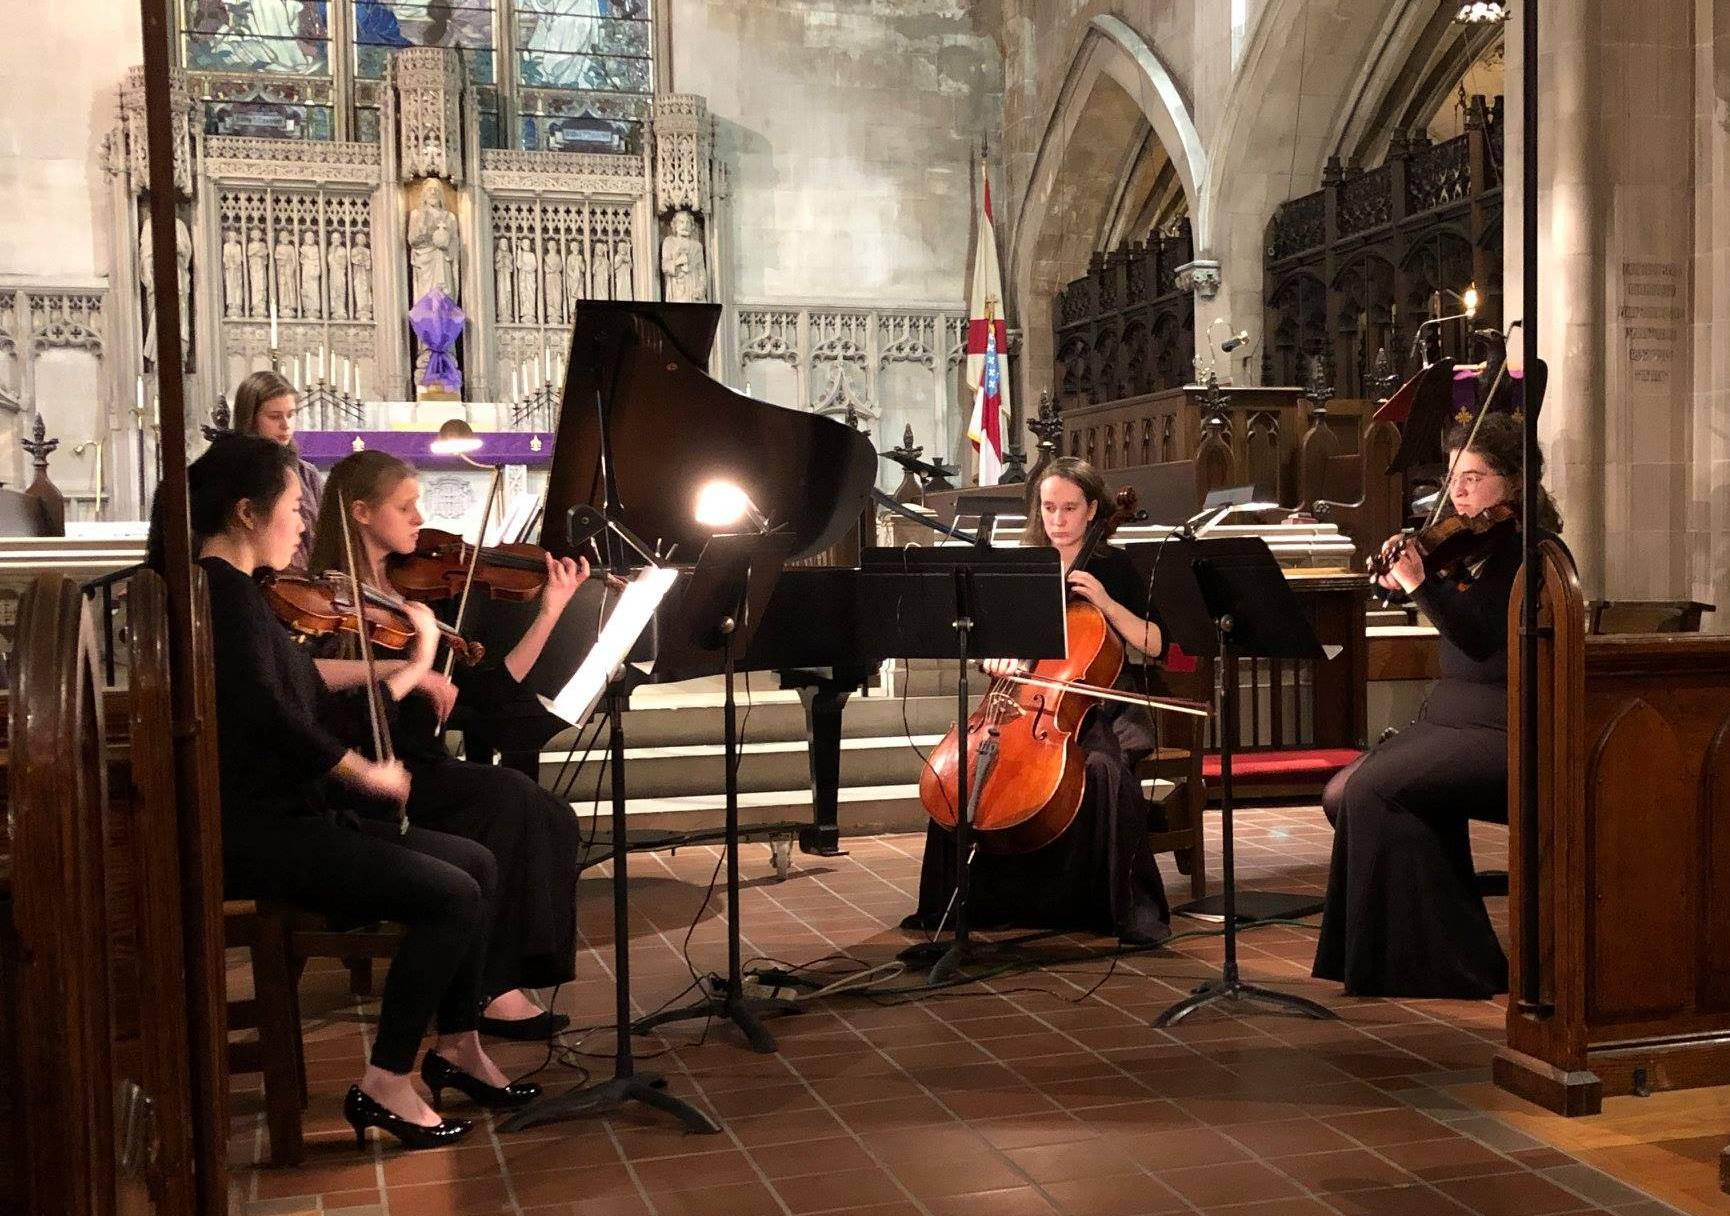 St. Andrews Episcopal Church - March 8, 2019The Finestra Quintet - Cuna, Maeve, Mirra, Nora, and Rowan, performed beautifully at the Vespers Service at St. Andrews in Highland Park.